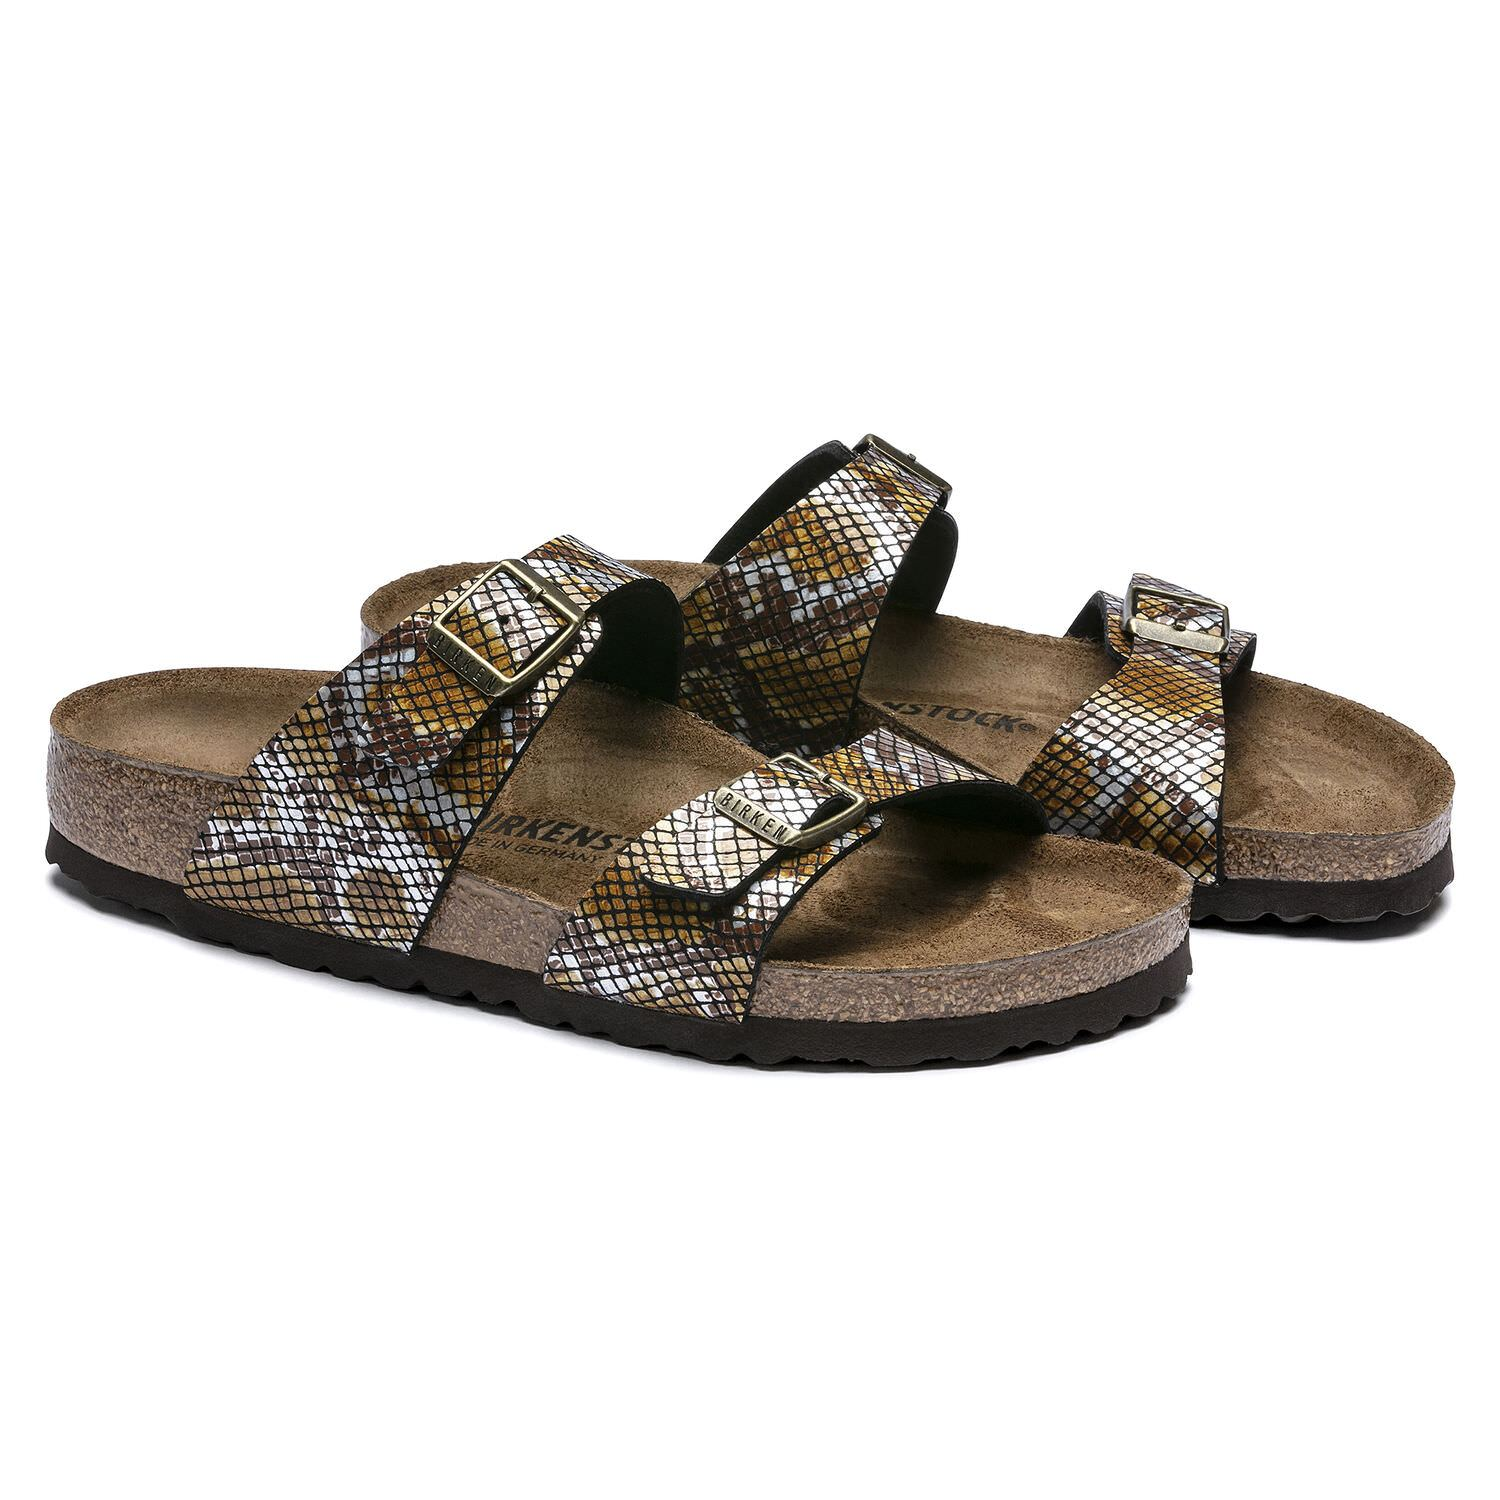 Birkenstock Seasonal, Sydney, Birko-Flor/Microfibre, Narrow Fit, Brown Python Sandals Birkenstock Seasonal Brown Python 36